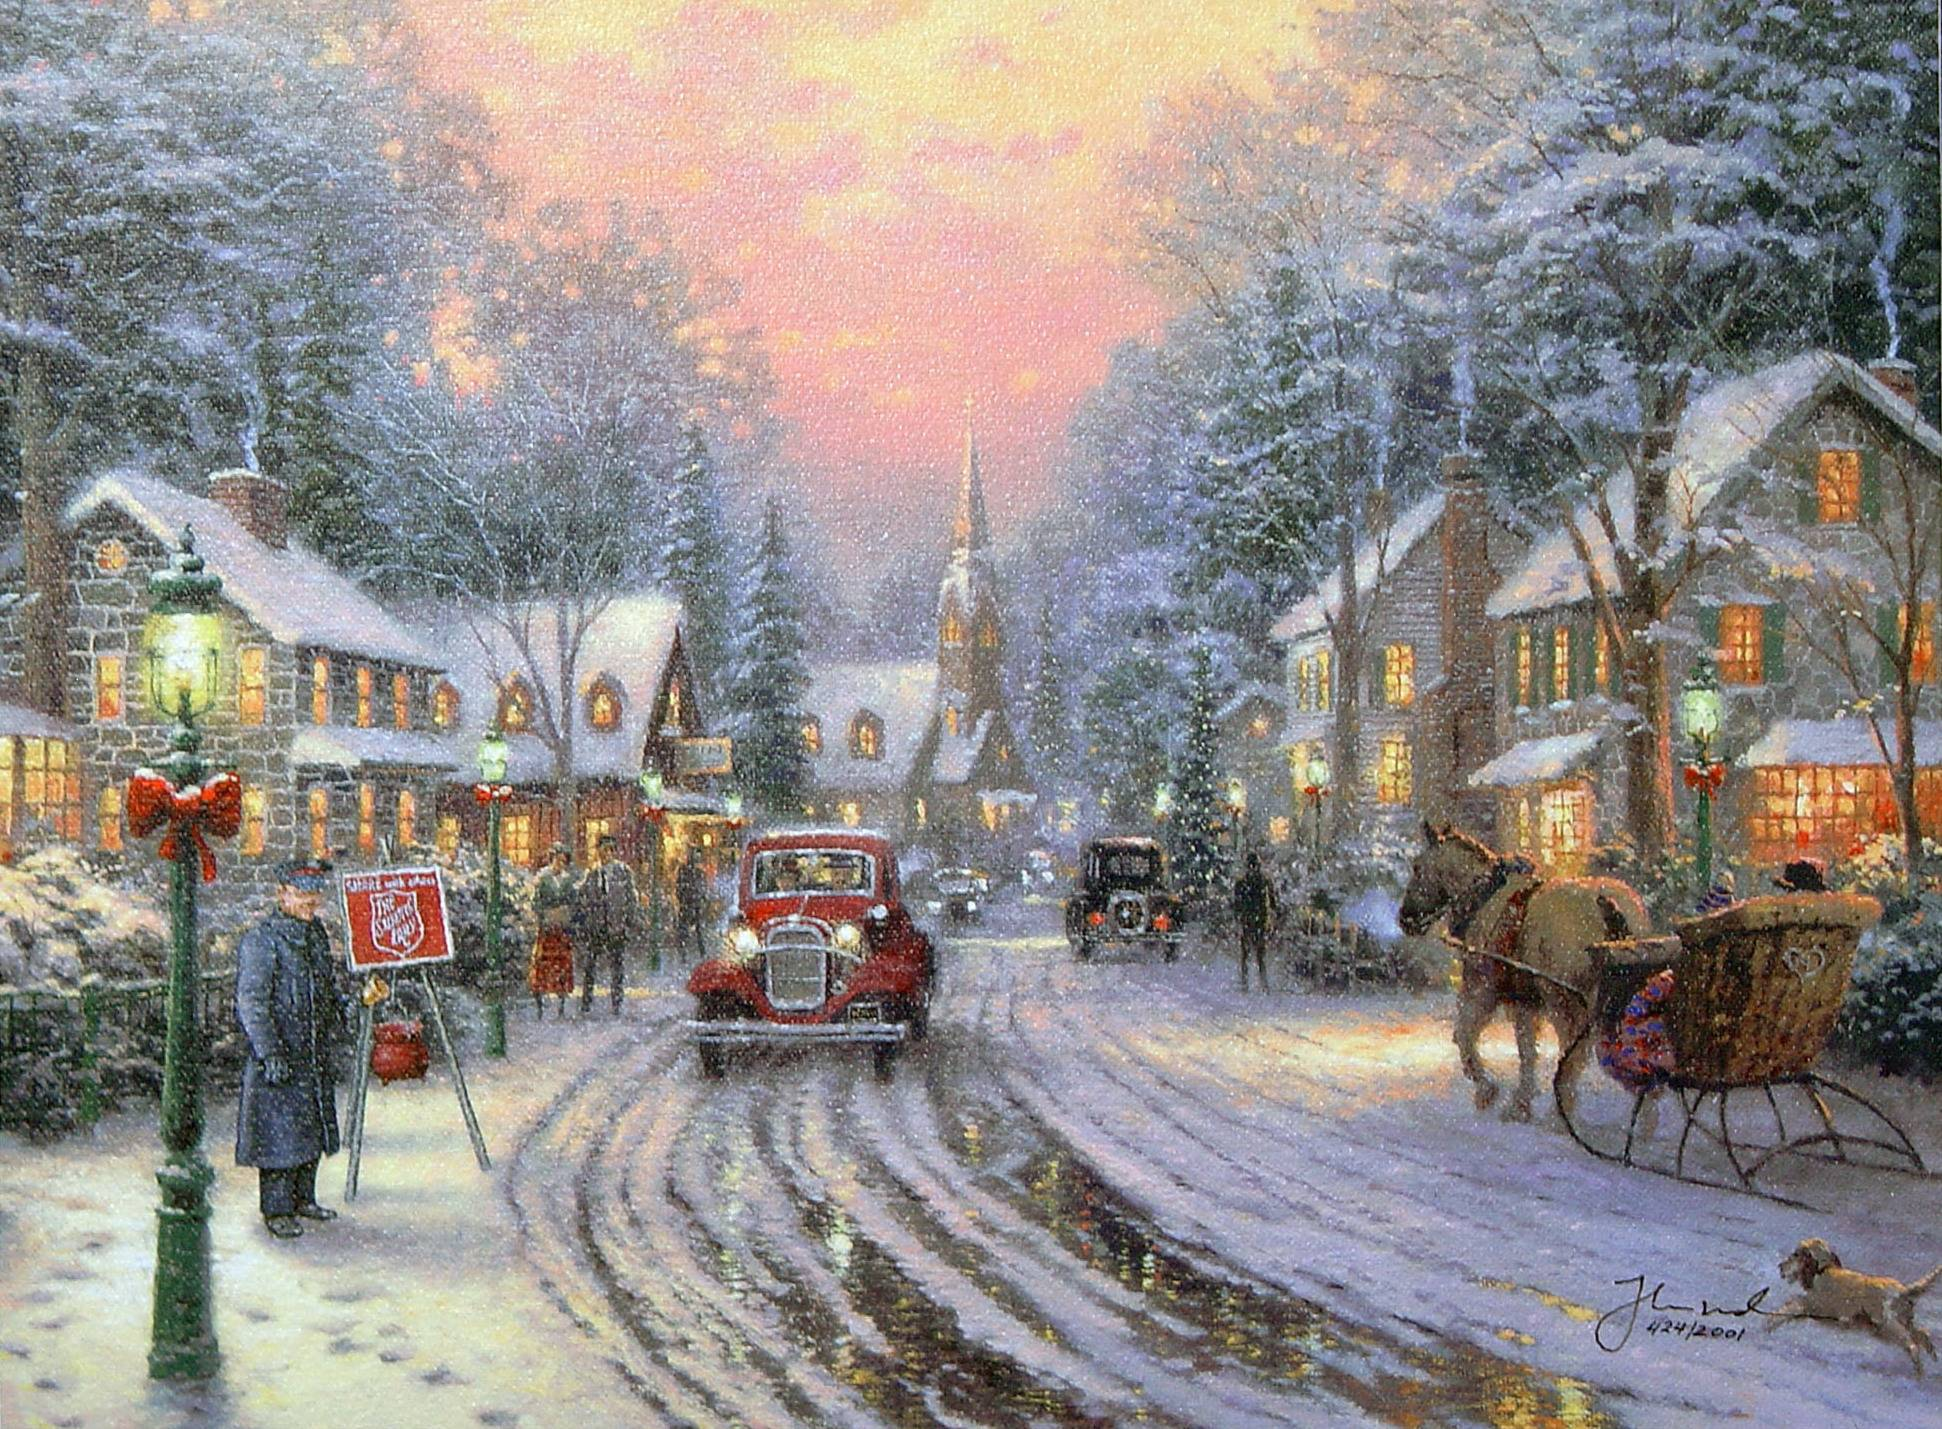 Free thomas kinkade wallpapers wallpaper cave related pictures thomas kinkade disney wallpaper free wallpaper voltagebd Gallery